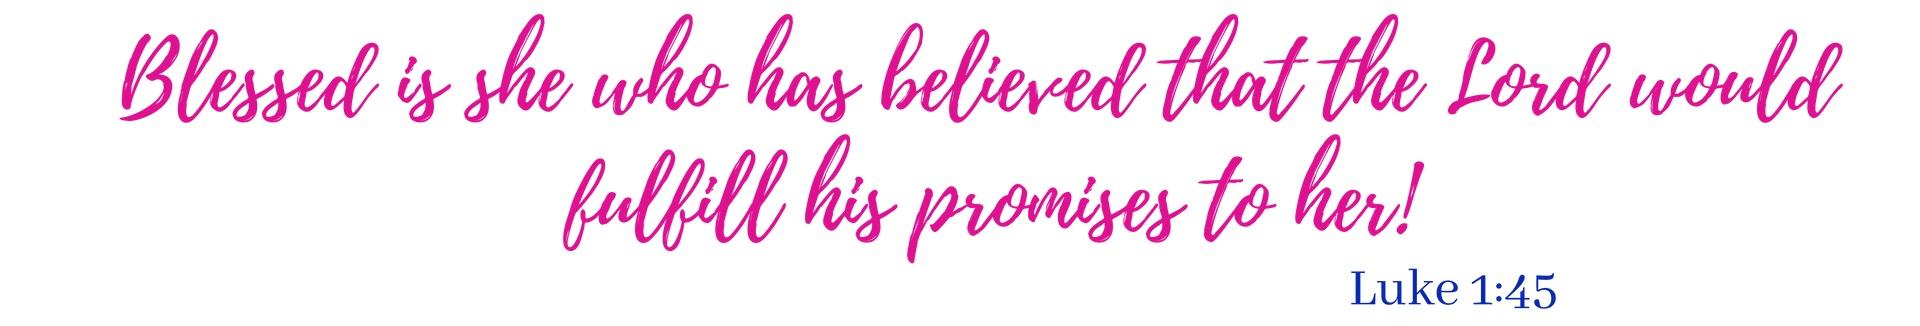 Blessed+is+she+who+has+believed+that+the+Lord+would+fulfill+his+promises+to+her%21+%281%29-min.jpg